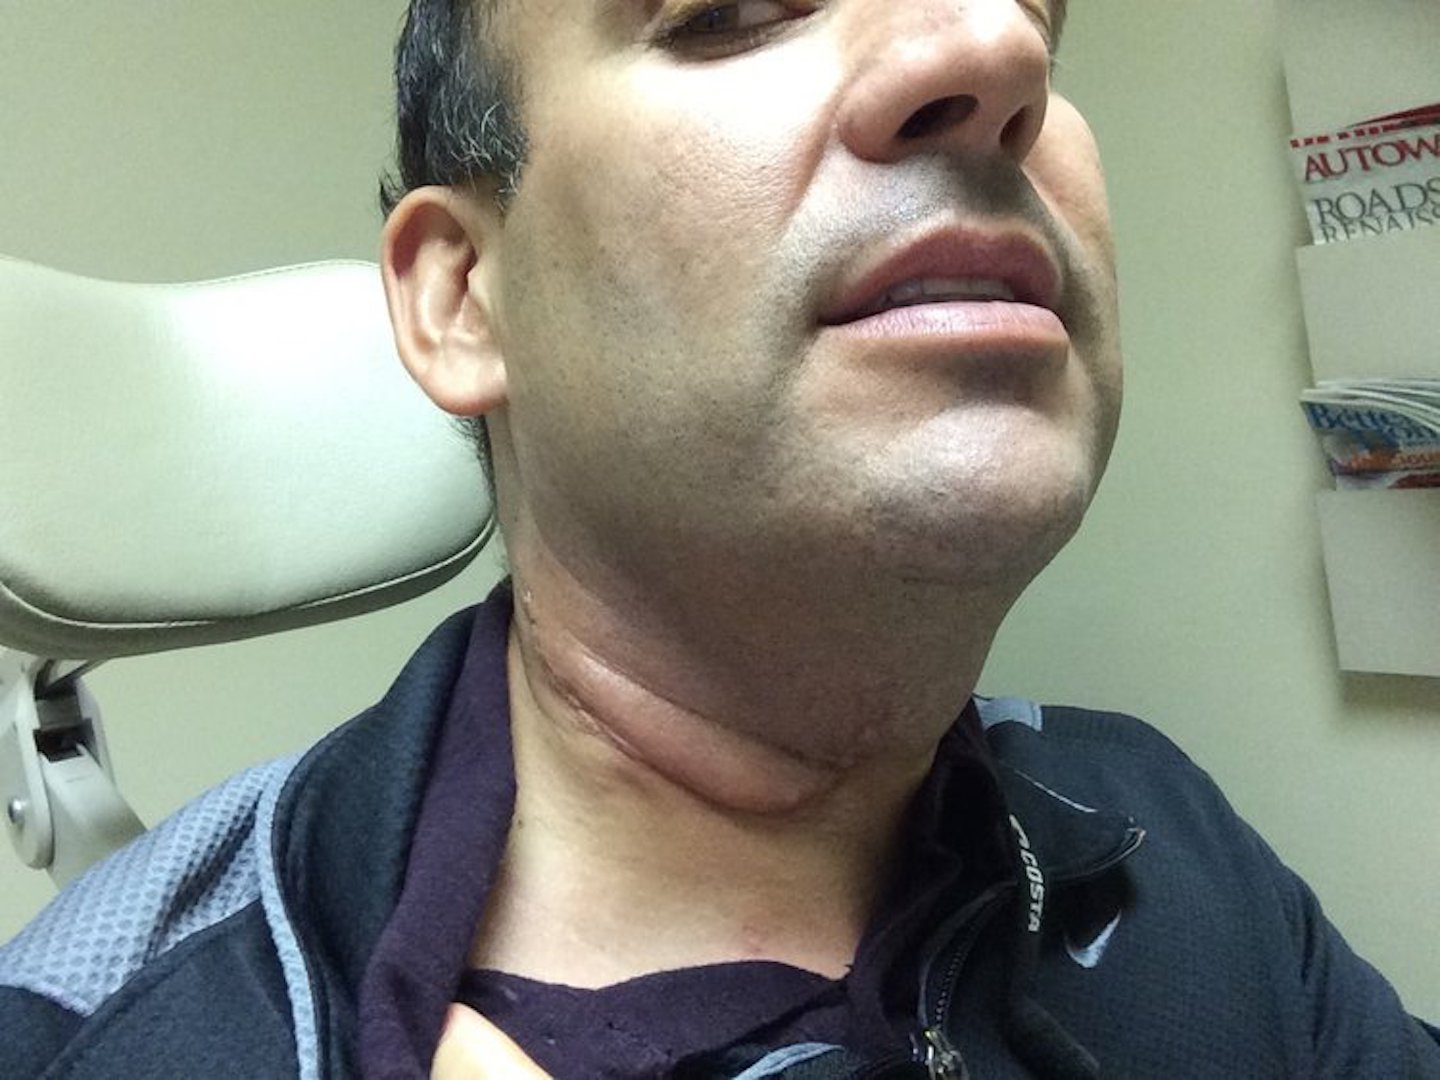 esophageal cancer hpv treatment of hpv cervical cancer